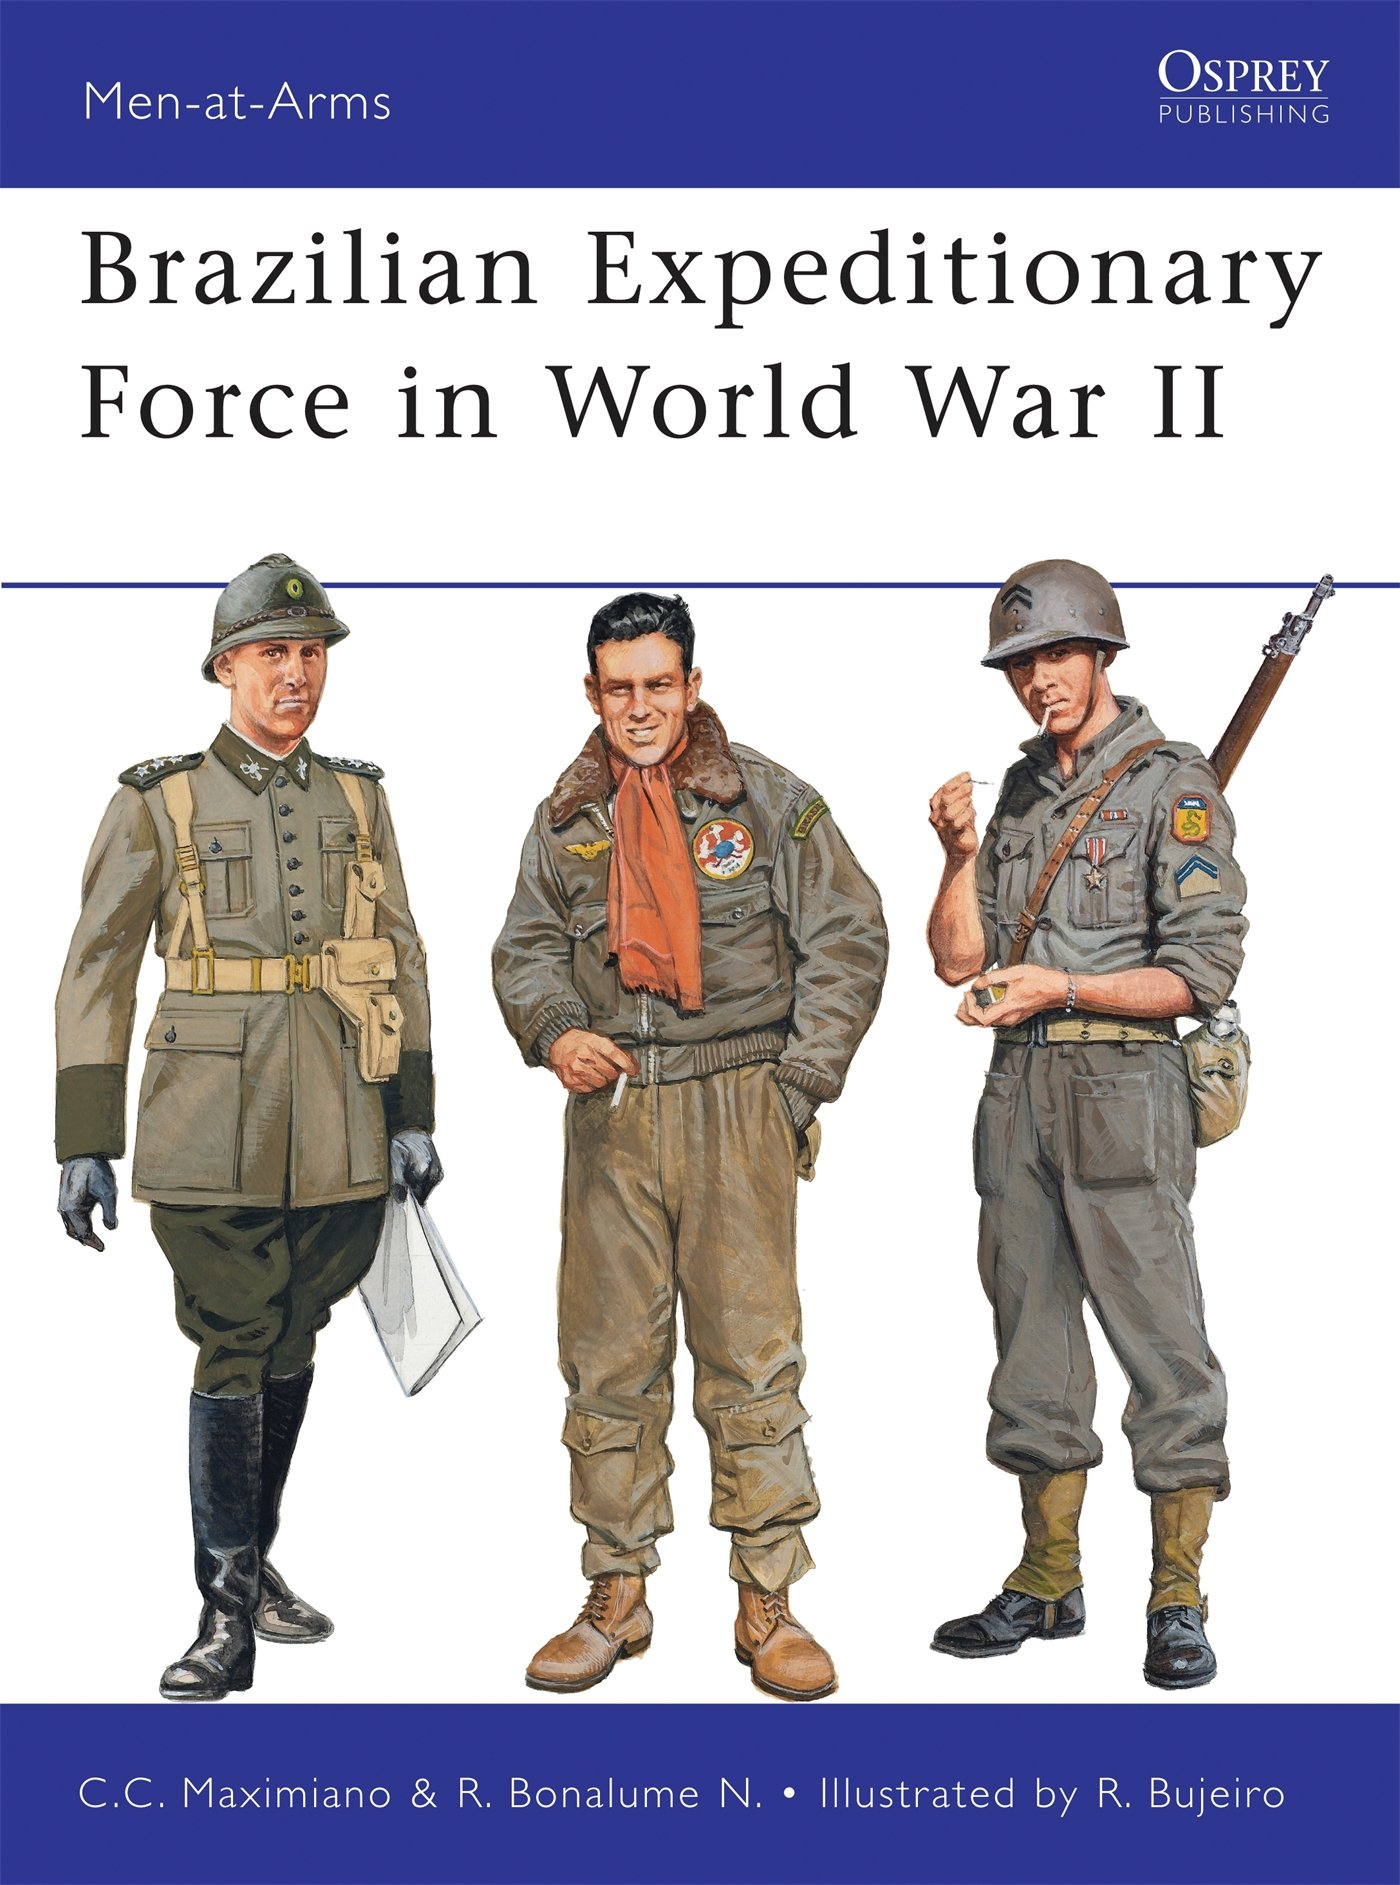 Brazilian Expeditionary Force in World War II (Men-at-Arms): Cesar